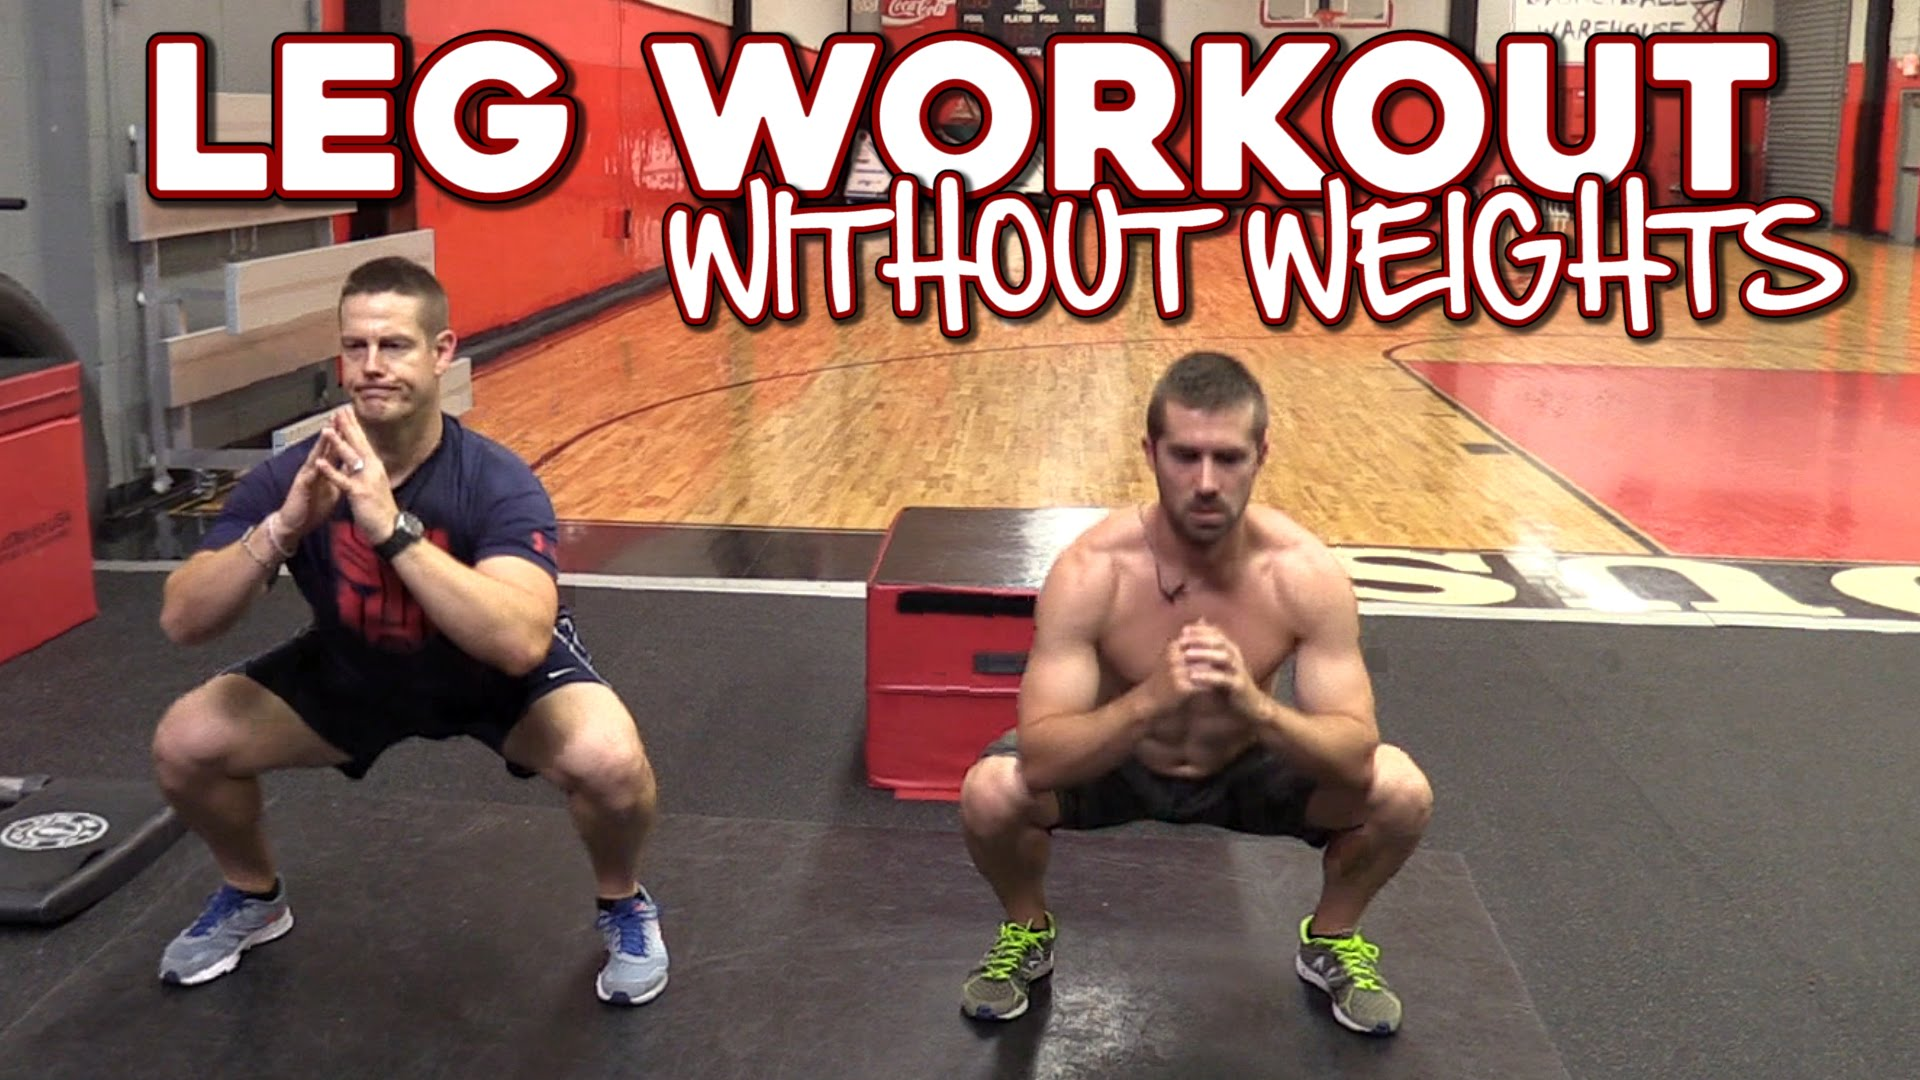 Workout tips video leg without weights